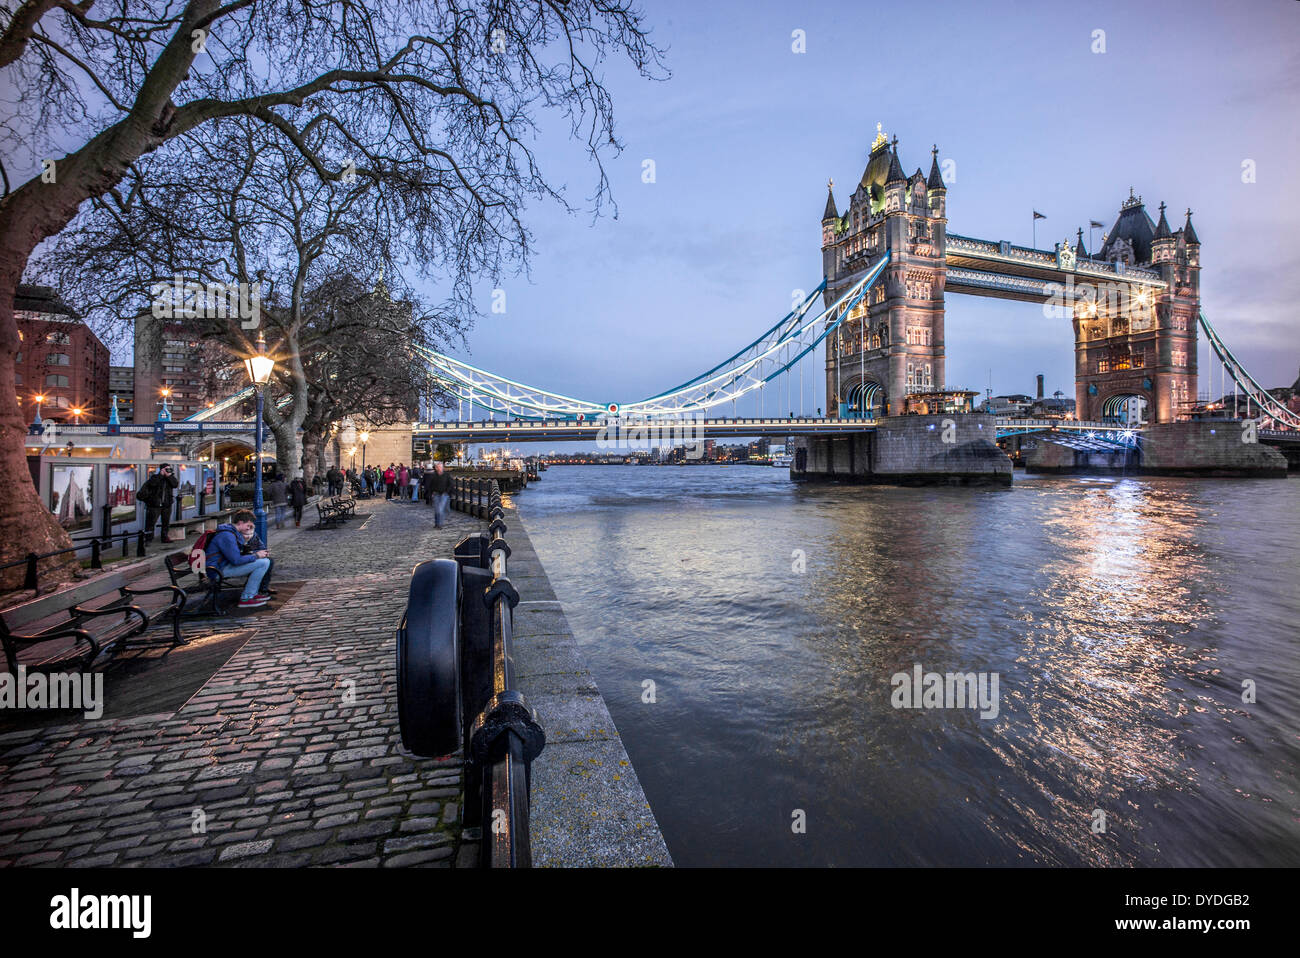 Tower Bridge at night from the north side. - Stock Image